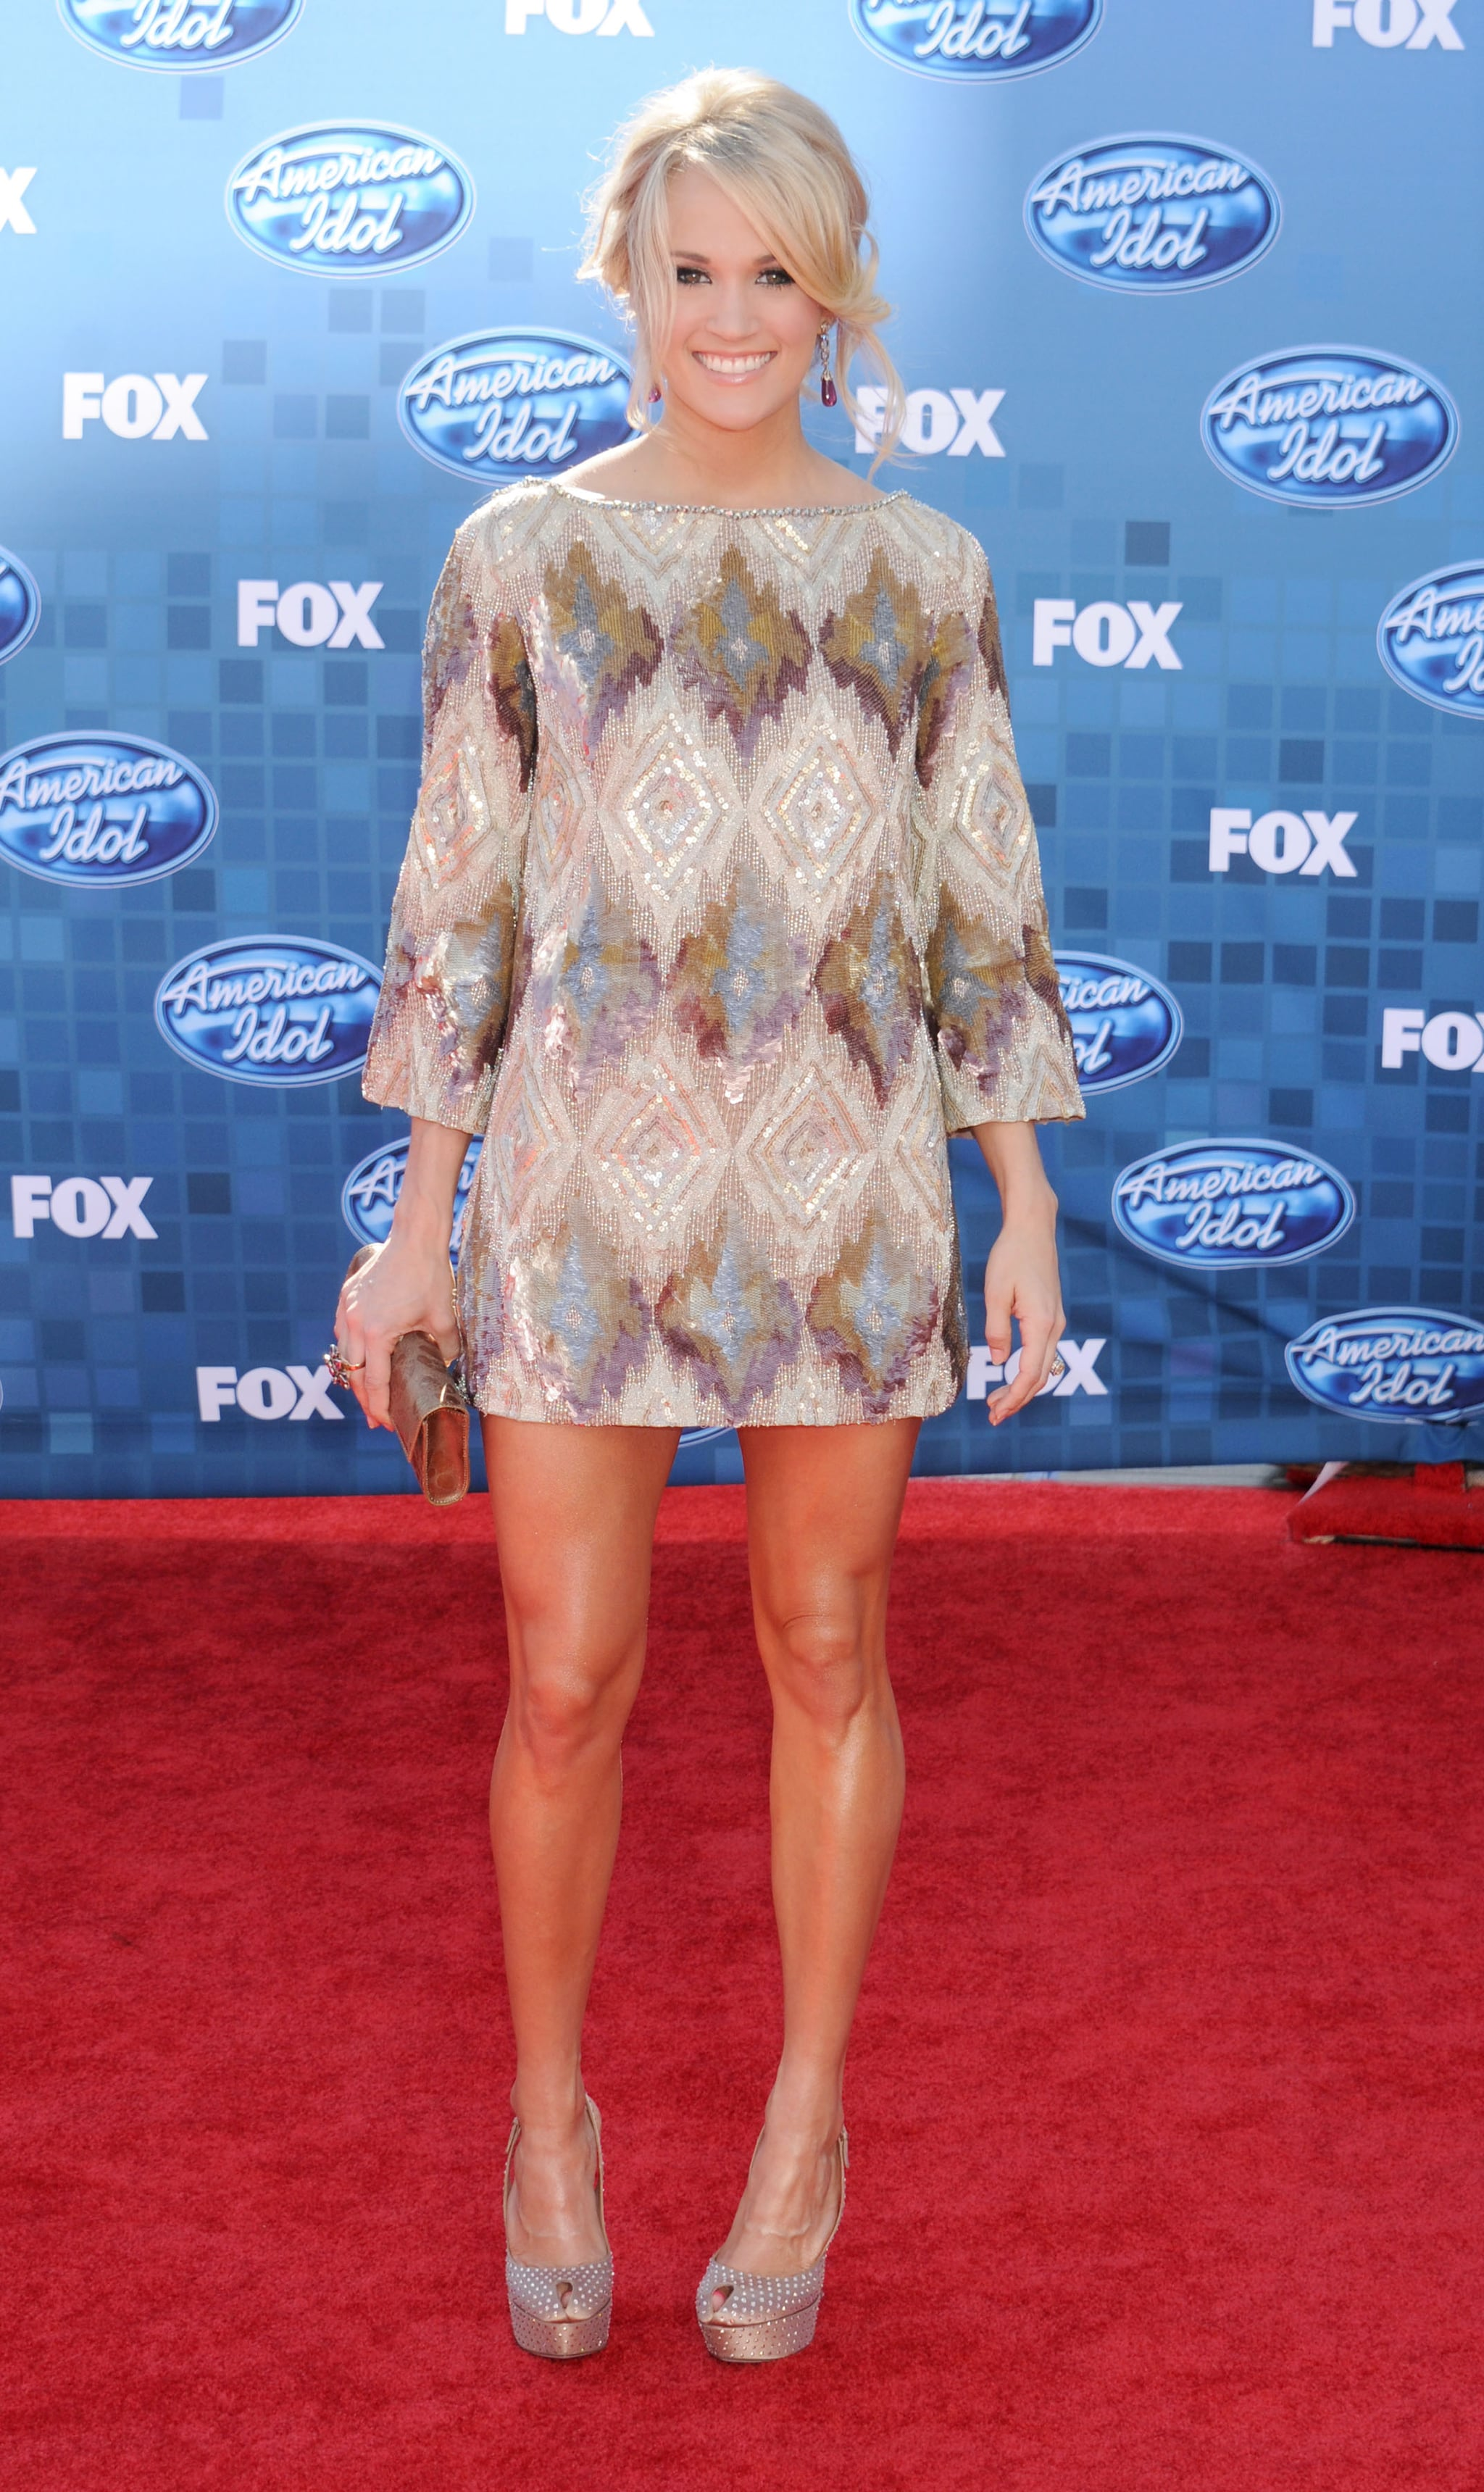 Carrie Underwood showed off her gorgeous gams in a beaded Lorena Sarbu mini at the 2011 finale of American Idol. She accessorized her leg-baring dress with embellished Sergio Rossi pumps and champagne clutch.